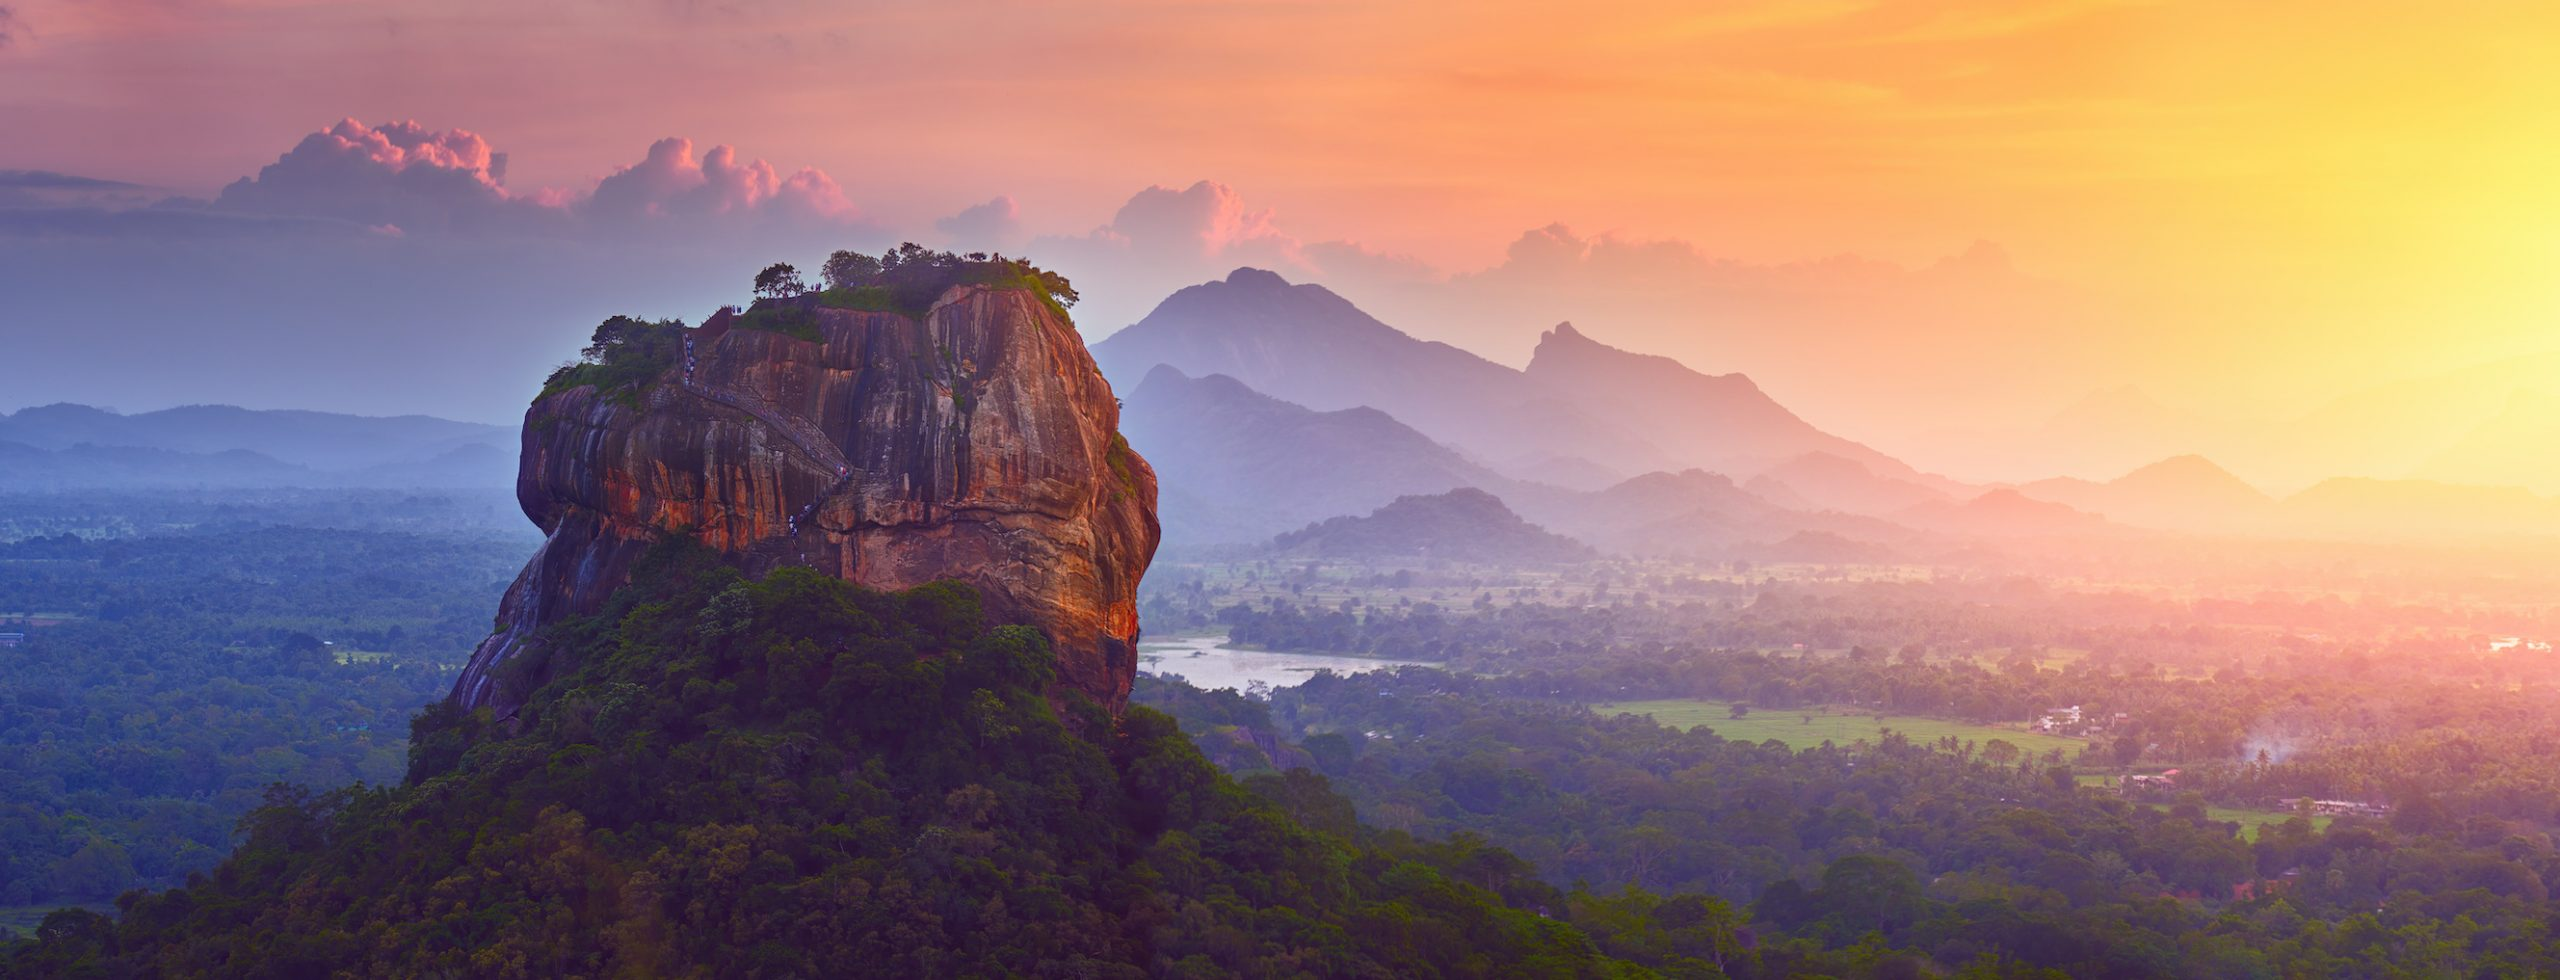 le rocher du lion, sri lanka